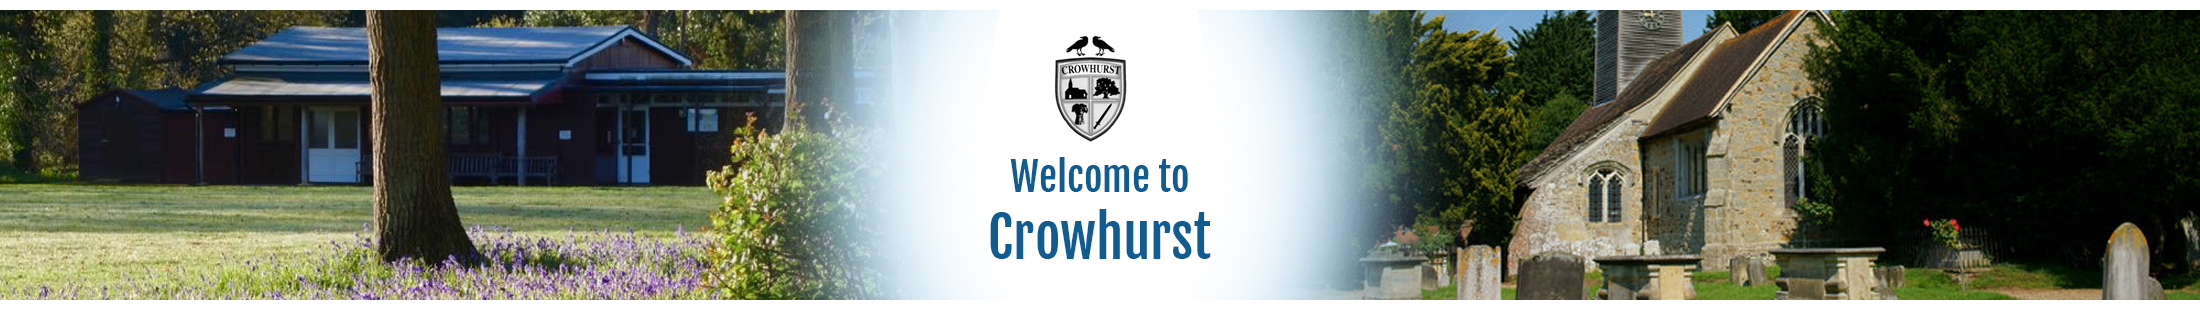 Header Image for Crowhurst Parish Council Surrey